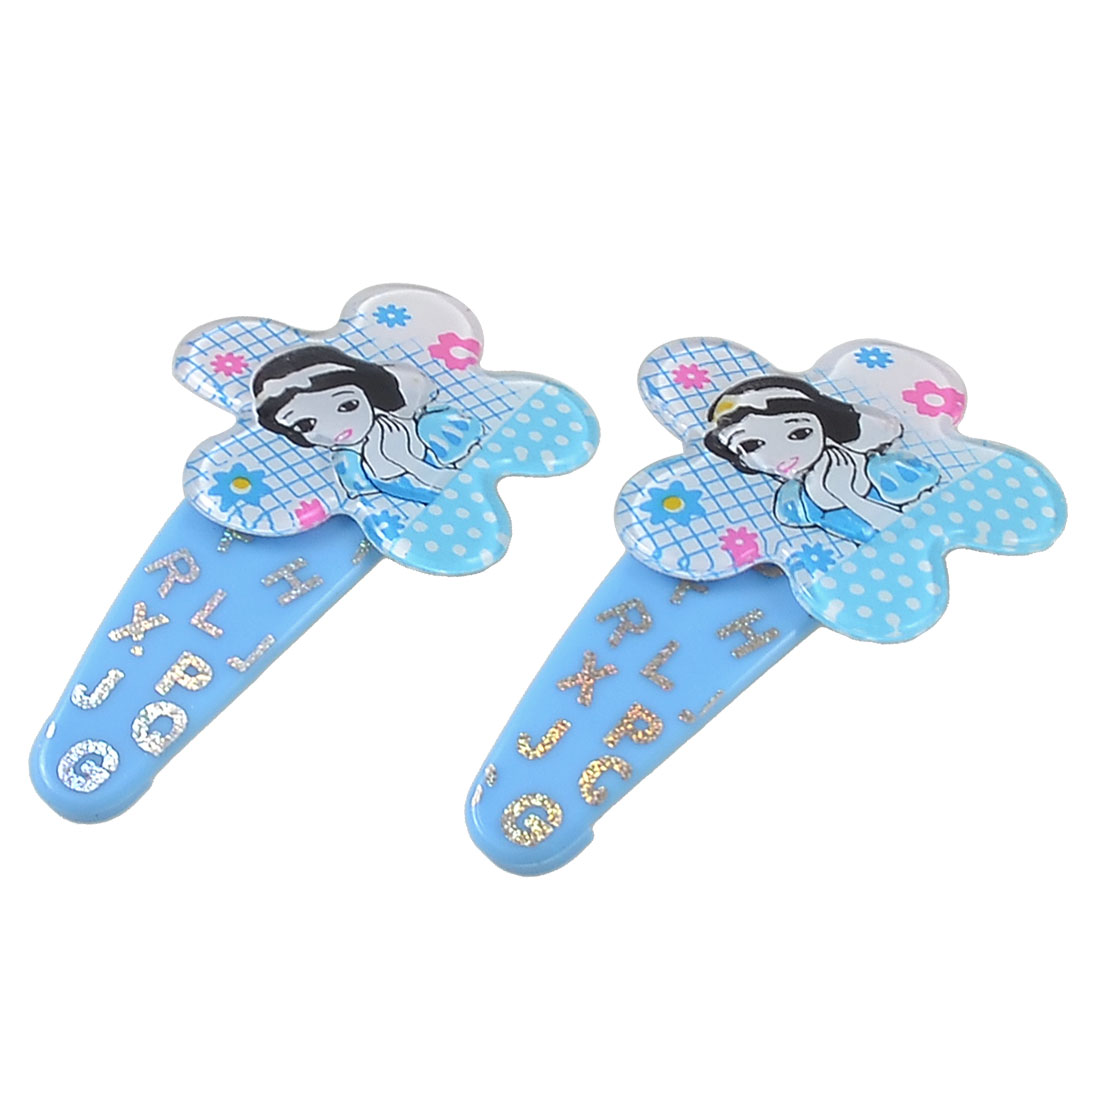 Pair Dots Grids Decor Plastic Beauty Girl Pattern Flowers Hair Clips Blue for Girls